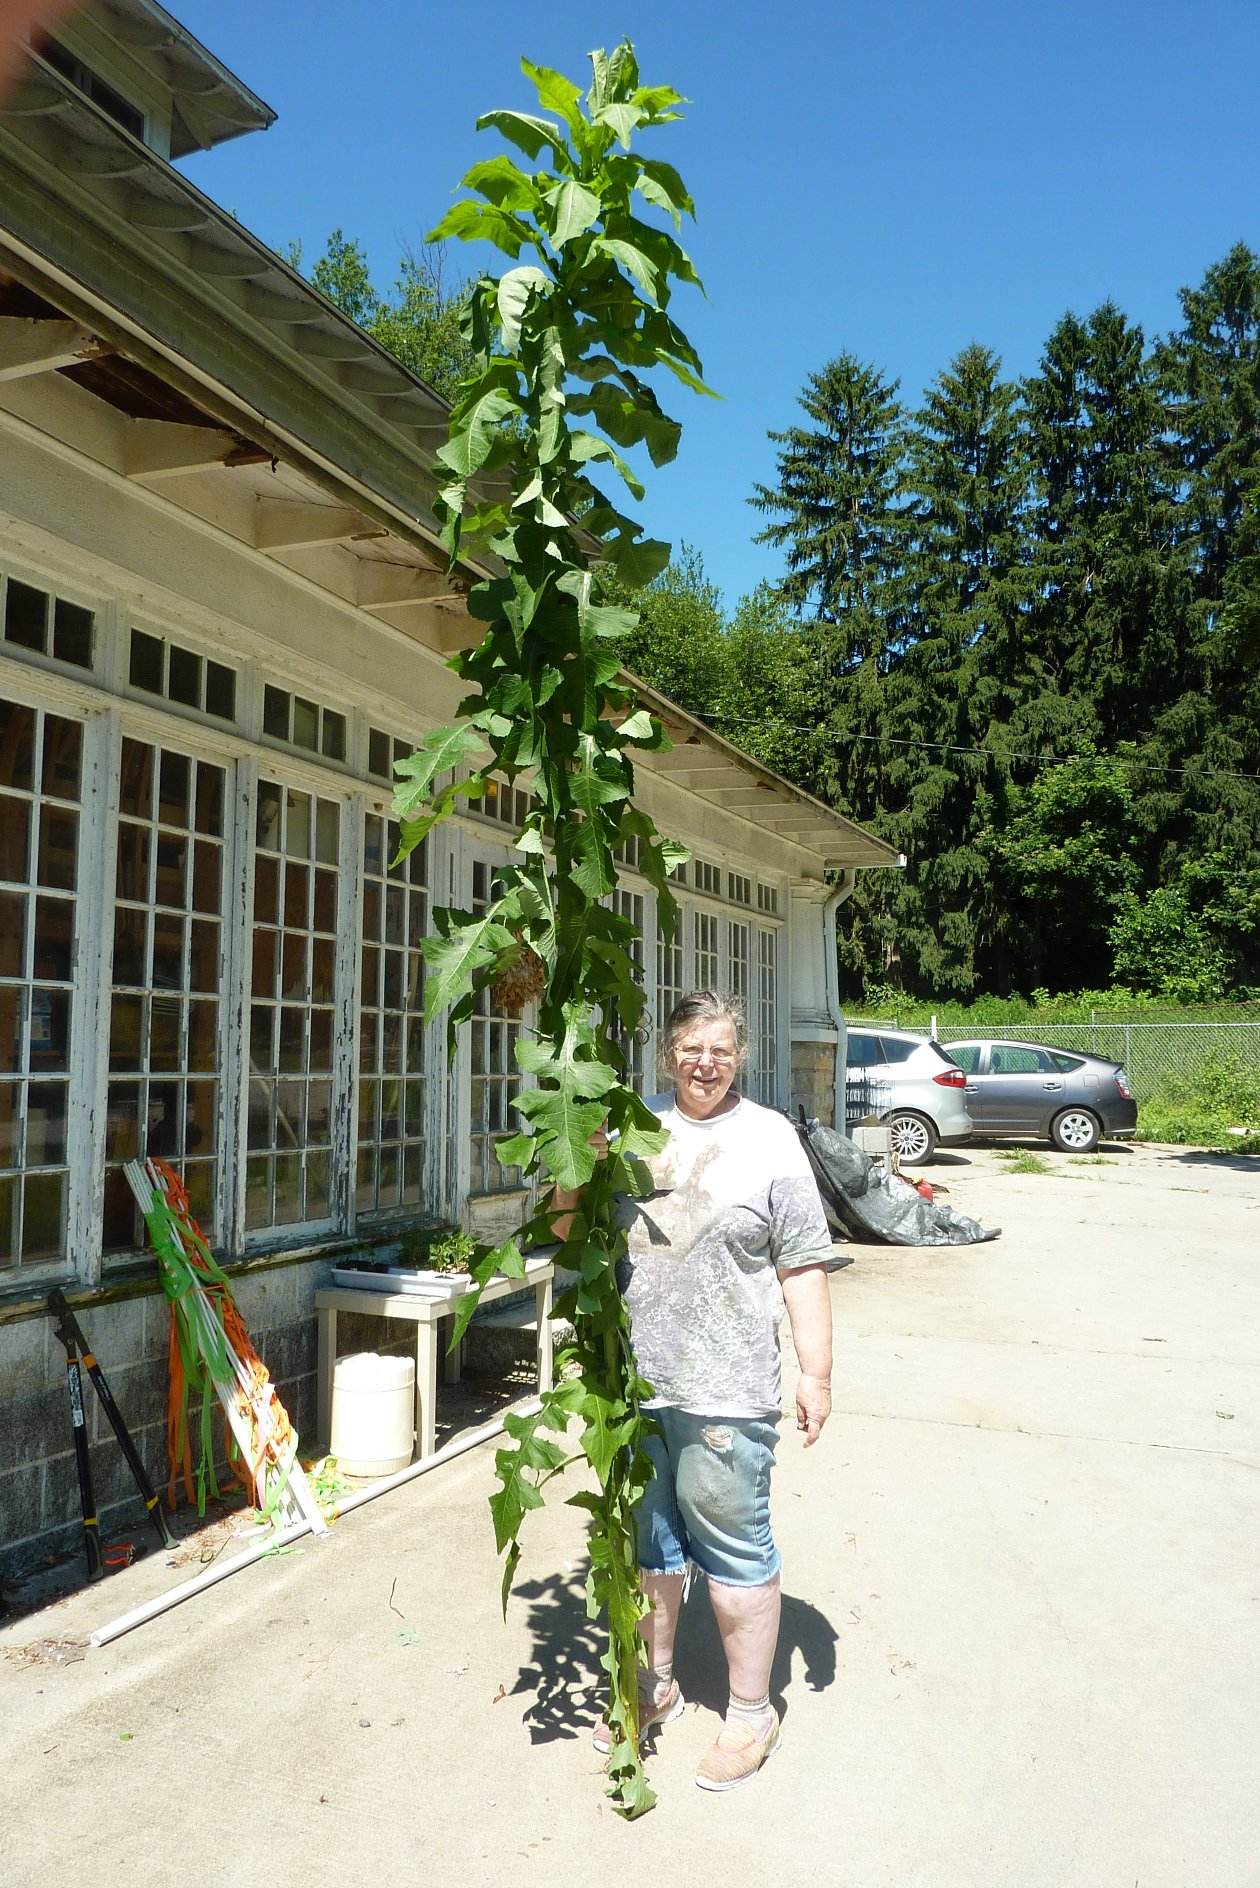 Bonnie with 10 foot high weed